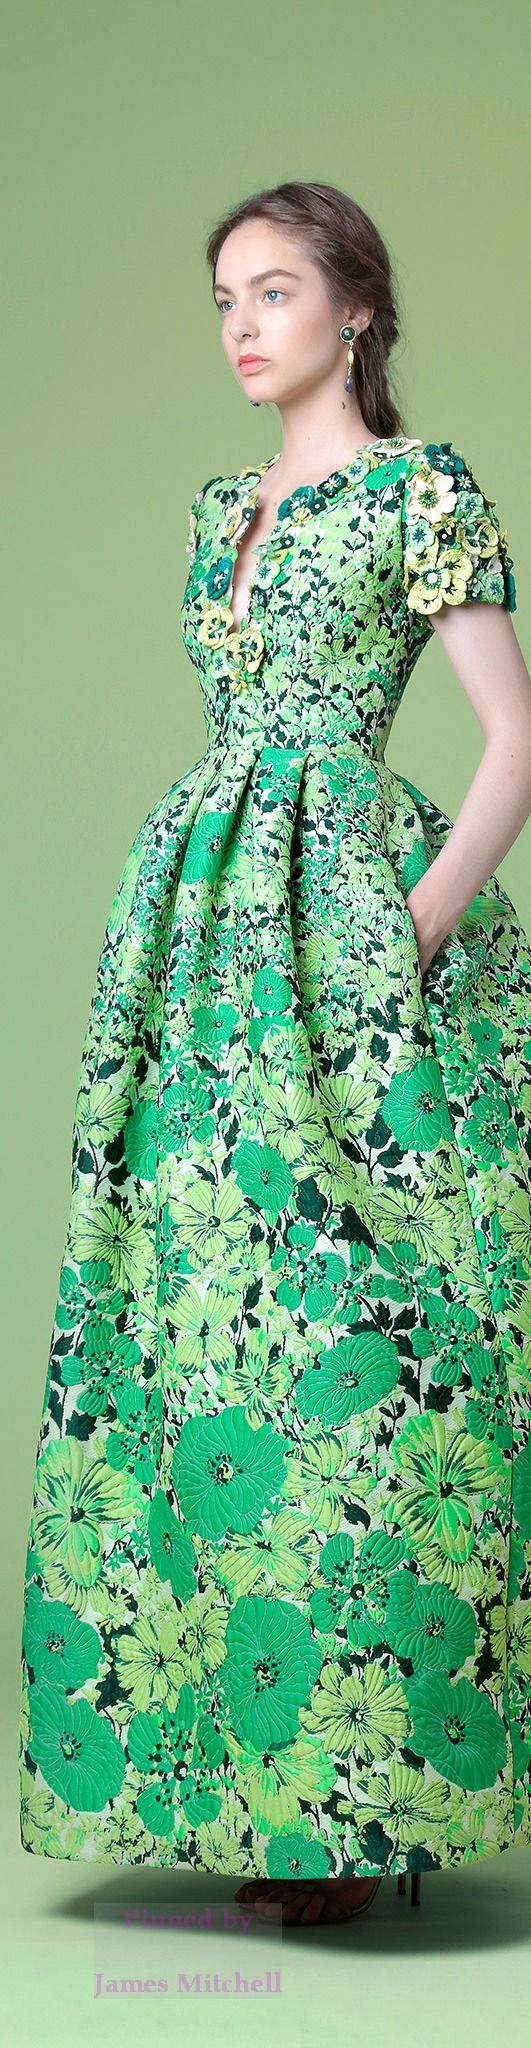 True Spring (12-Tone | SciART method colour analysis) | Andrew Gn Resort 15: floral green gown.